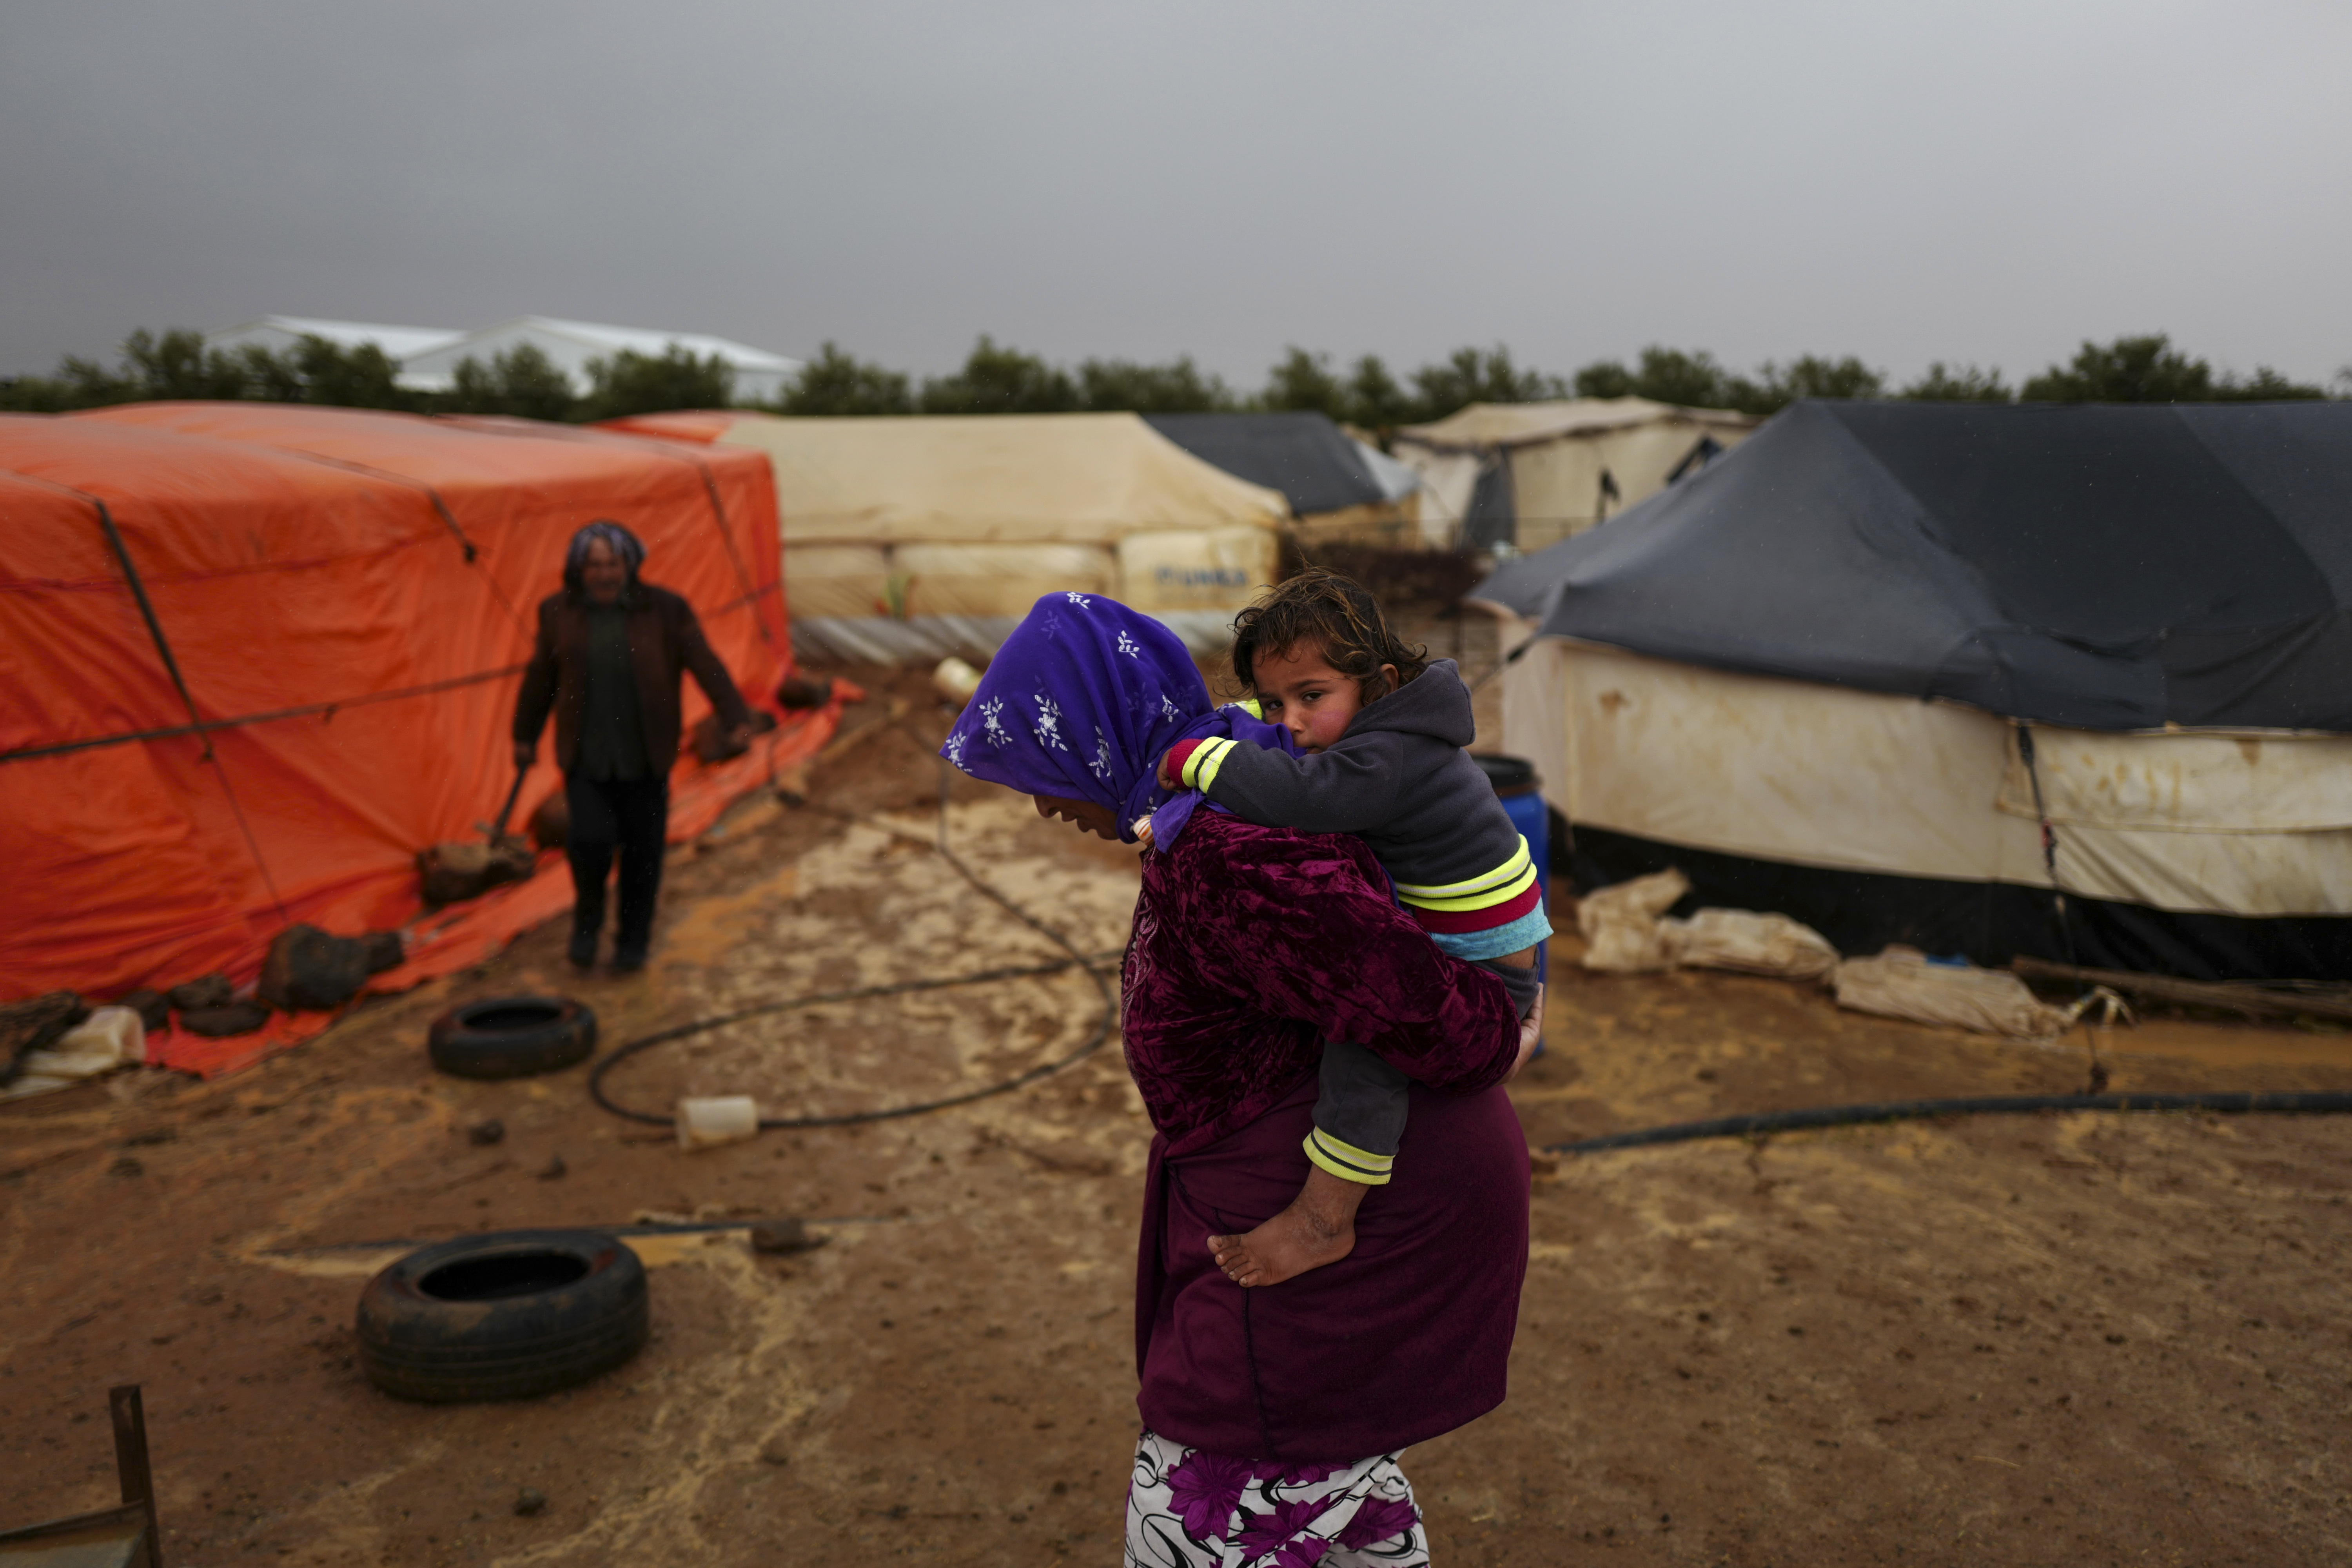 A Syrian refugee carries her child as she heads back to her tent through muddy grounds during a rainfall at an informal tented settlement near the Syrian border, on the outskirts of Mafraq, Jordan, March 28, 2016.